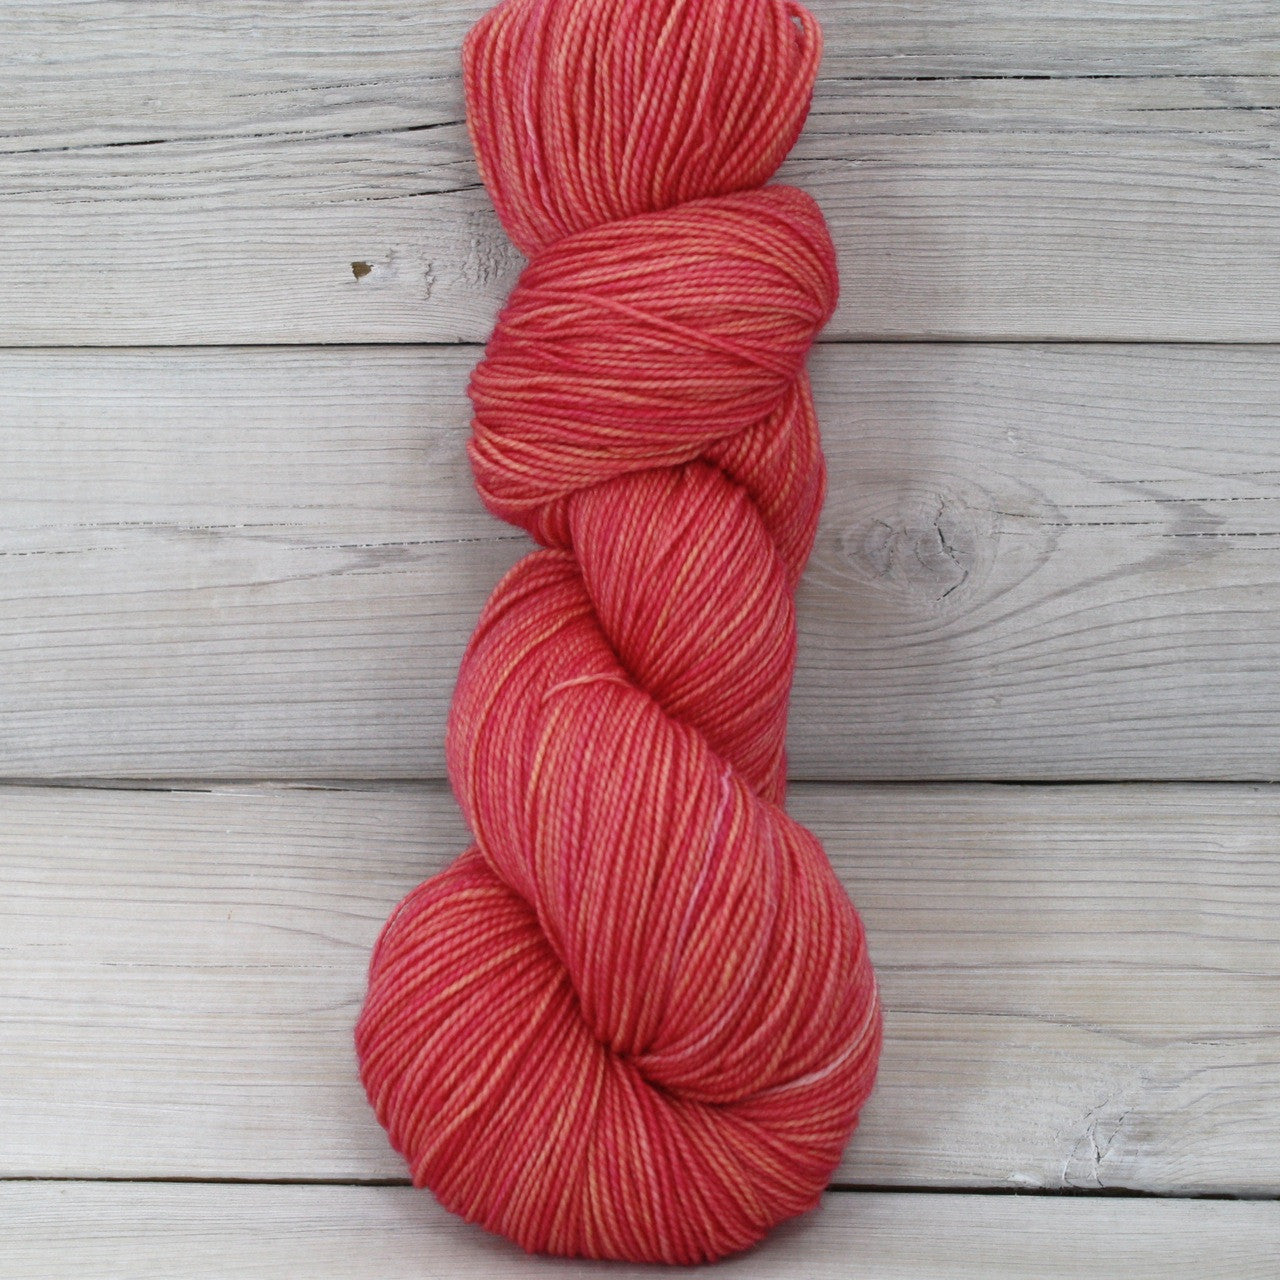 Athena Sock Yarn | Colorway: Sorbet